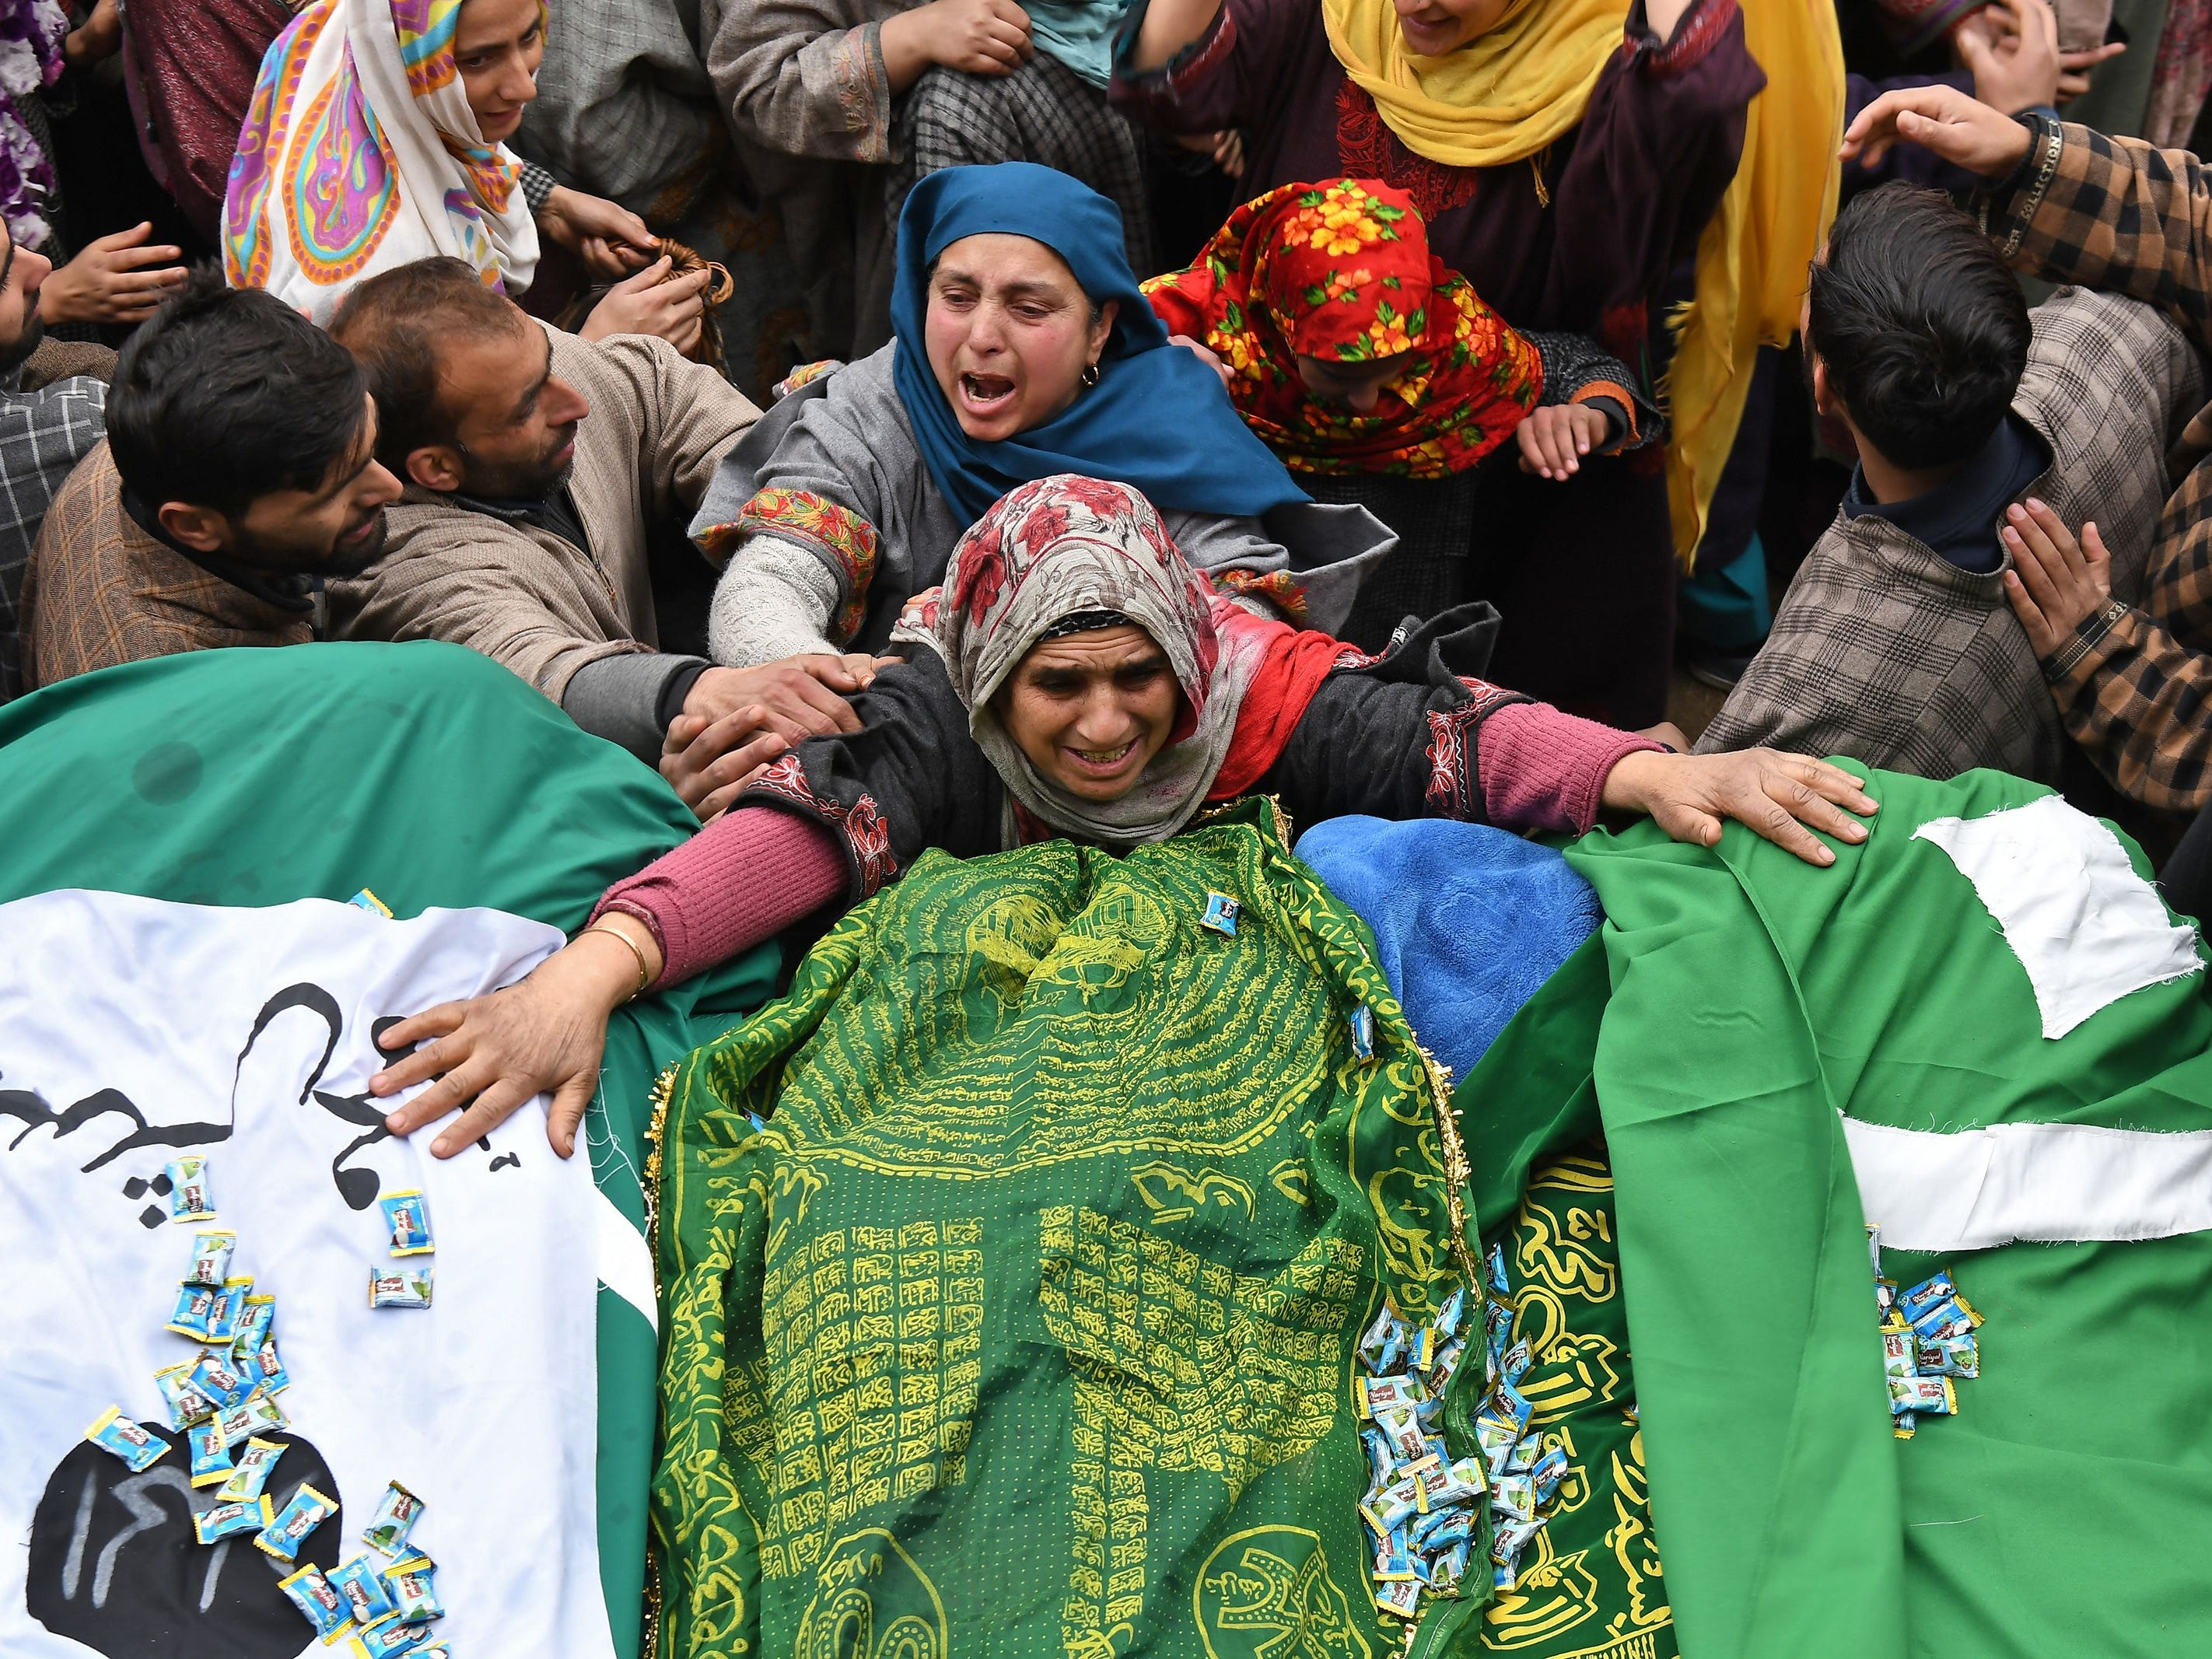 A Kashmiri woman touches the feet of two slain militants during a funeral procession in Chursoo Awantipora, in Pulwama district south of Srinagar, on Jan. 4, 2019. Three militants were killed and one Indian army soldier injured during a gun battle in Gulshanpora Tral, south of Srinagar, on Jan. 3, Indian media reports said.